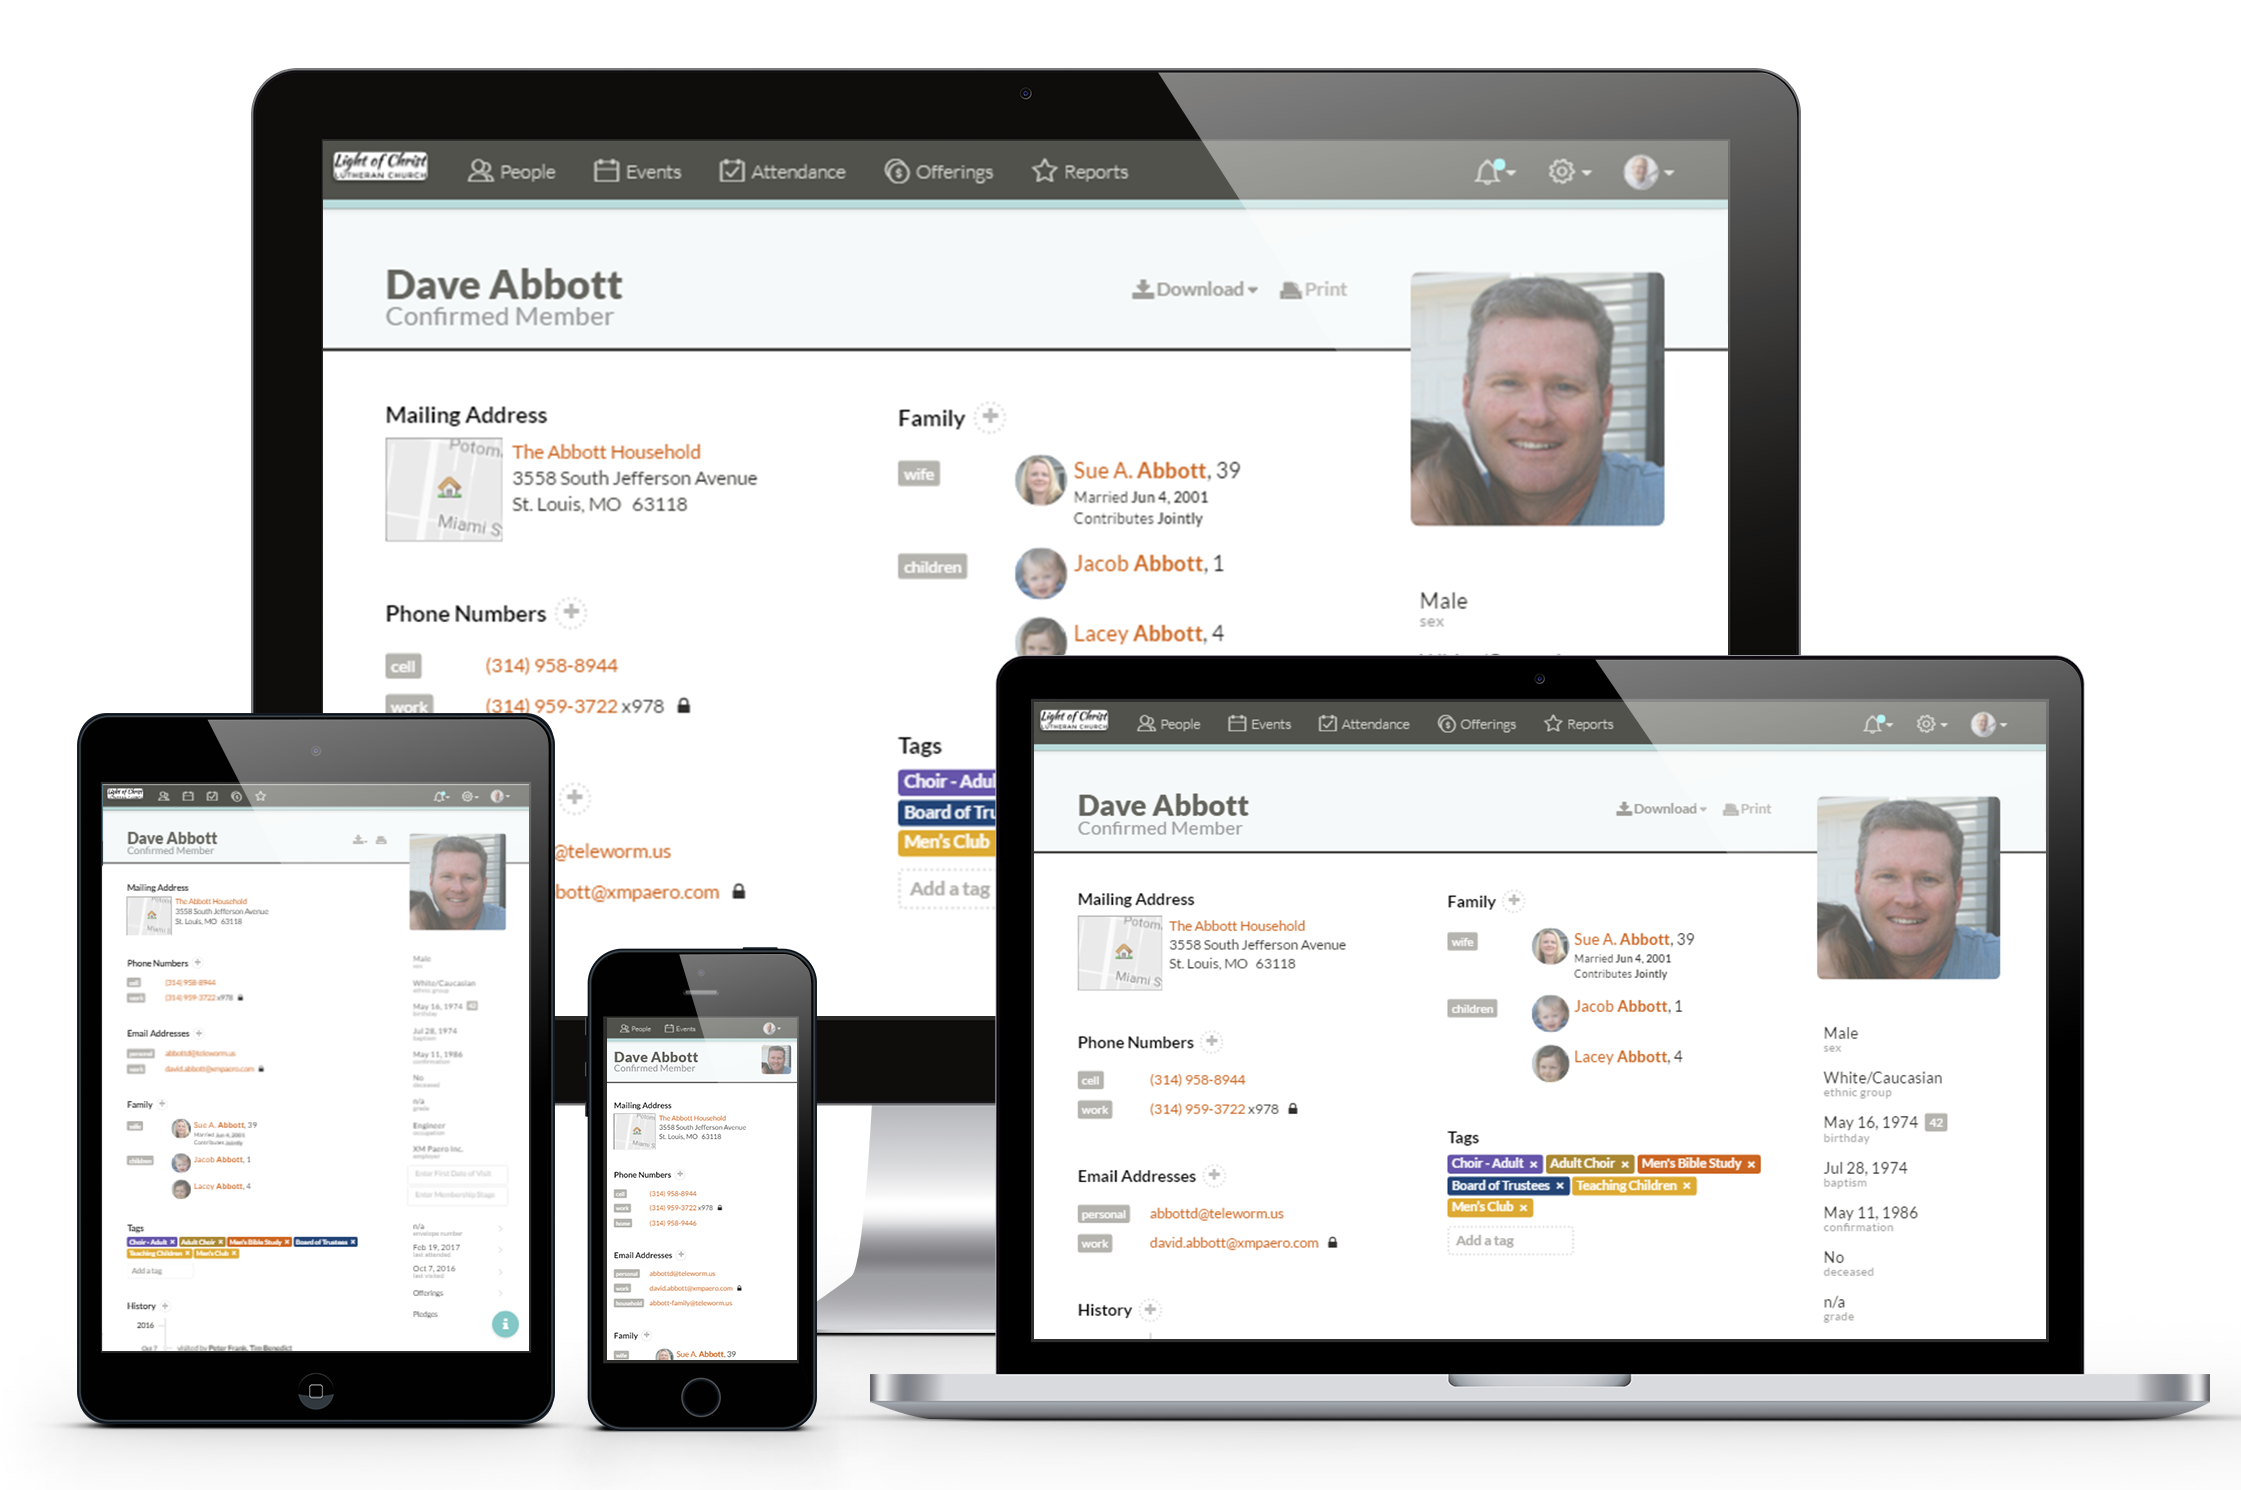 The ultimate flexibility in church management software.